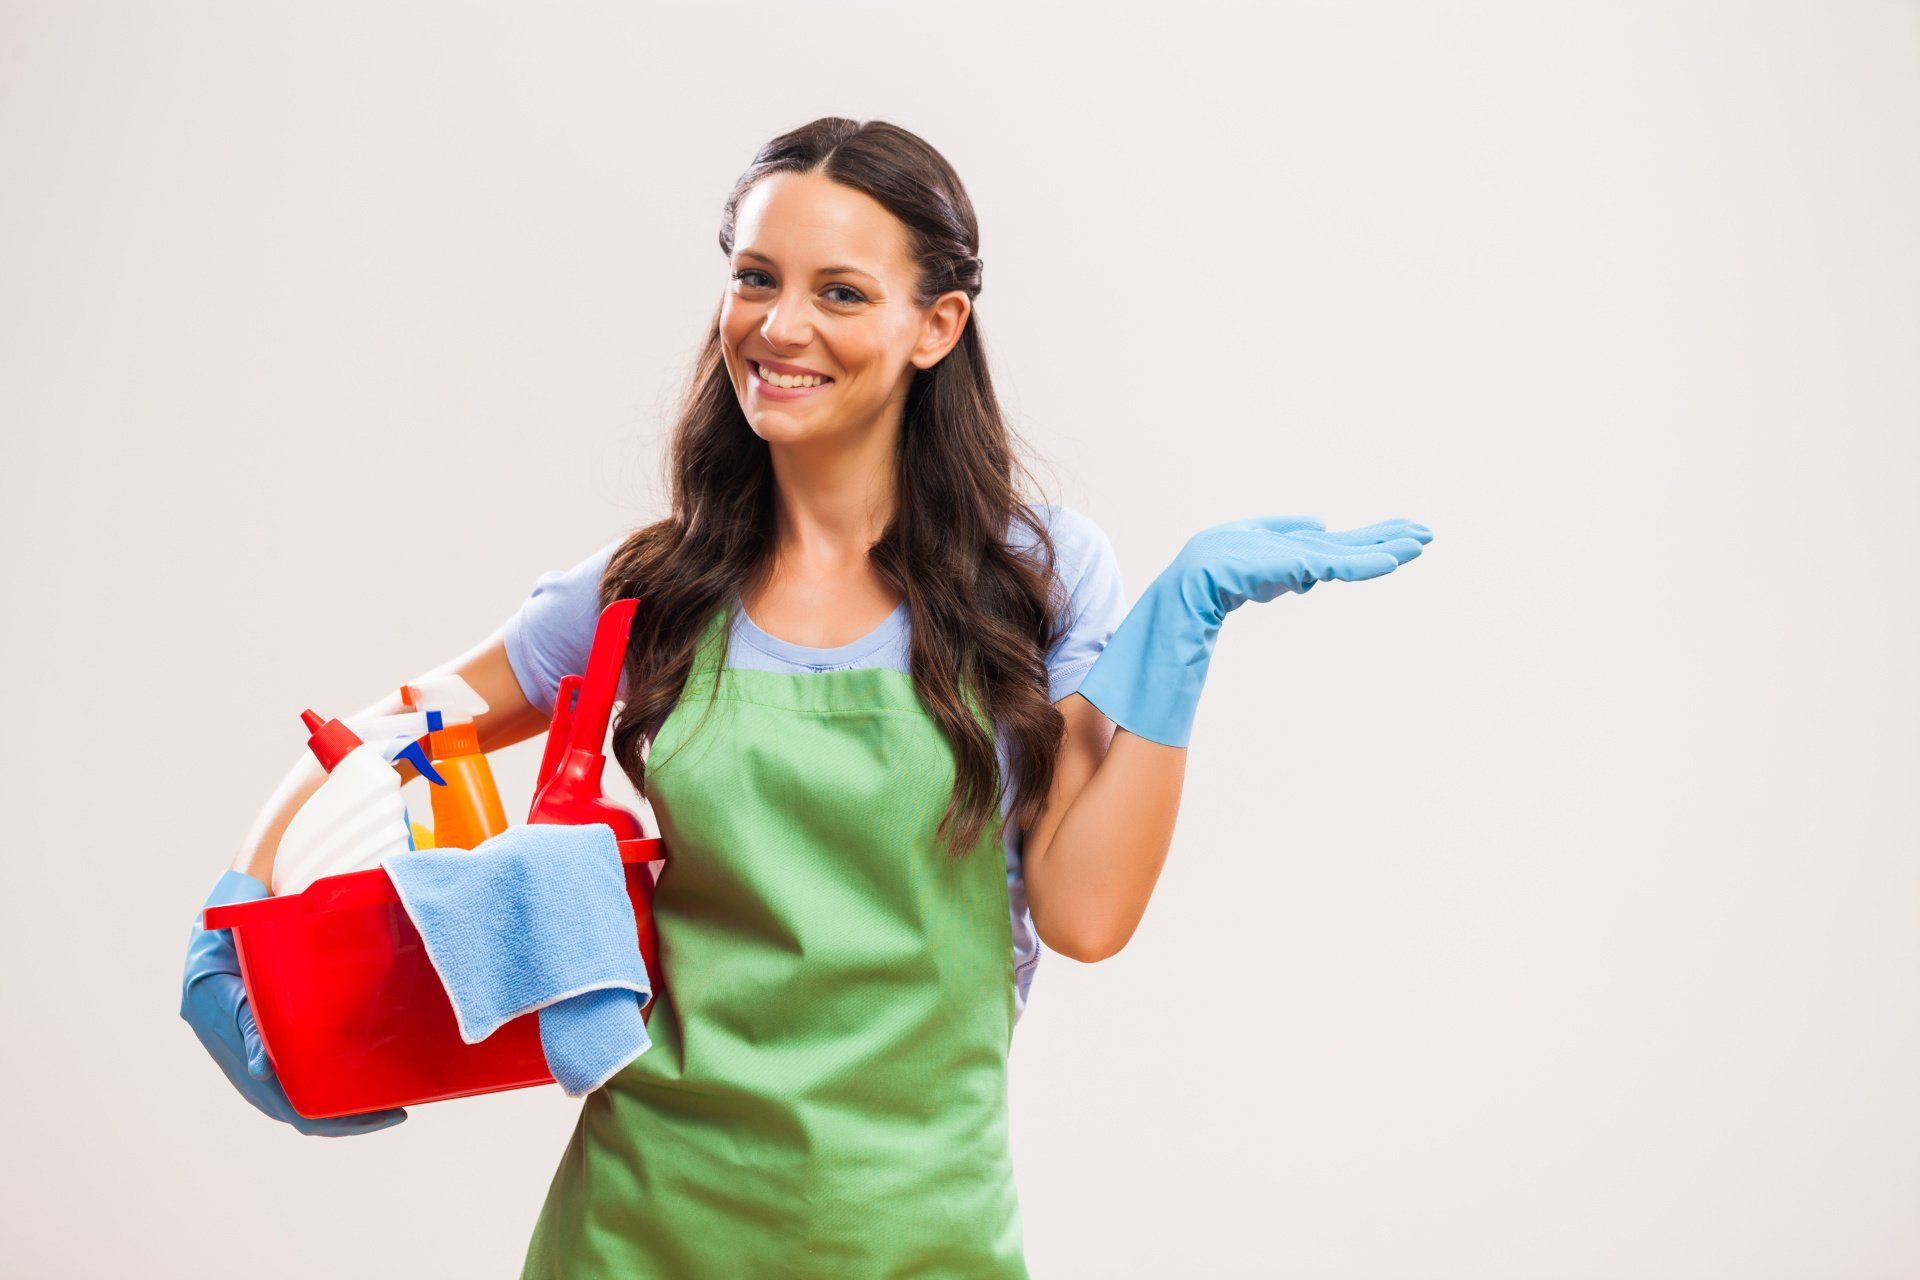 a cleaning service worker smiling and holding cleaning supplies